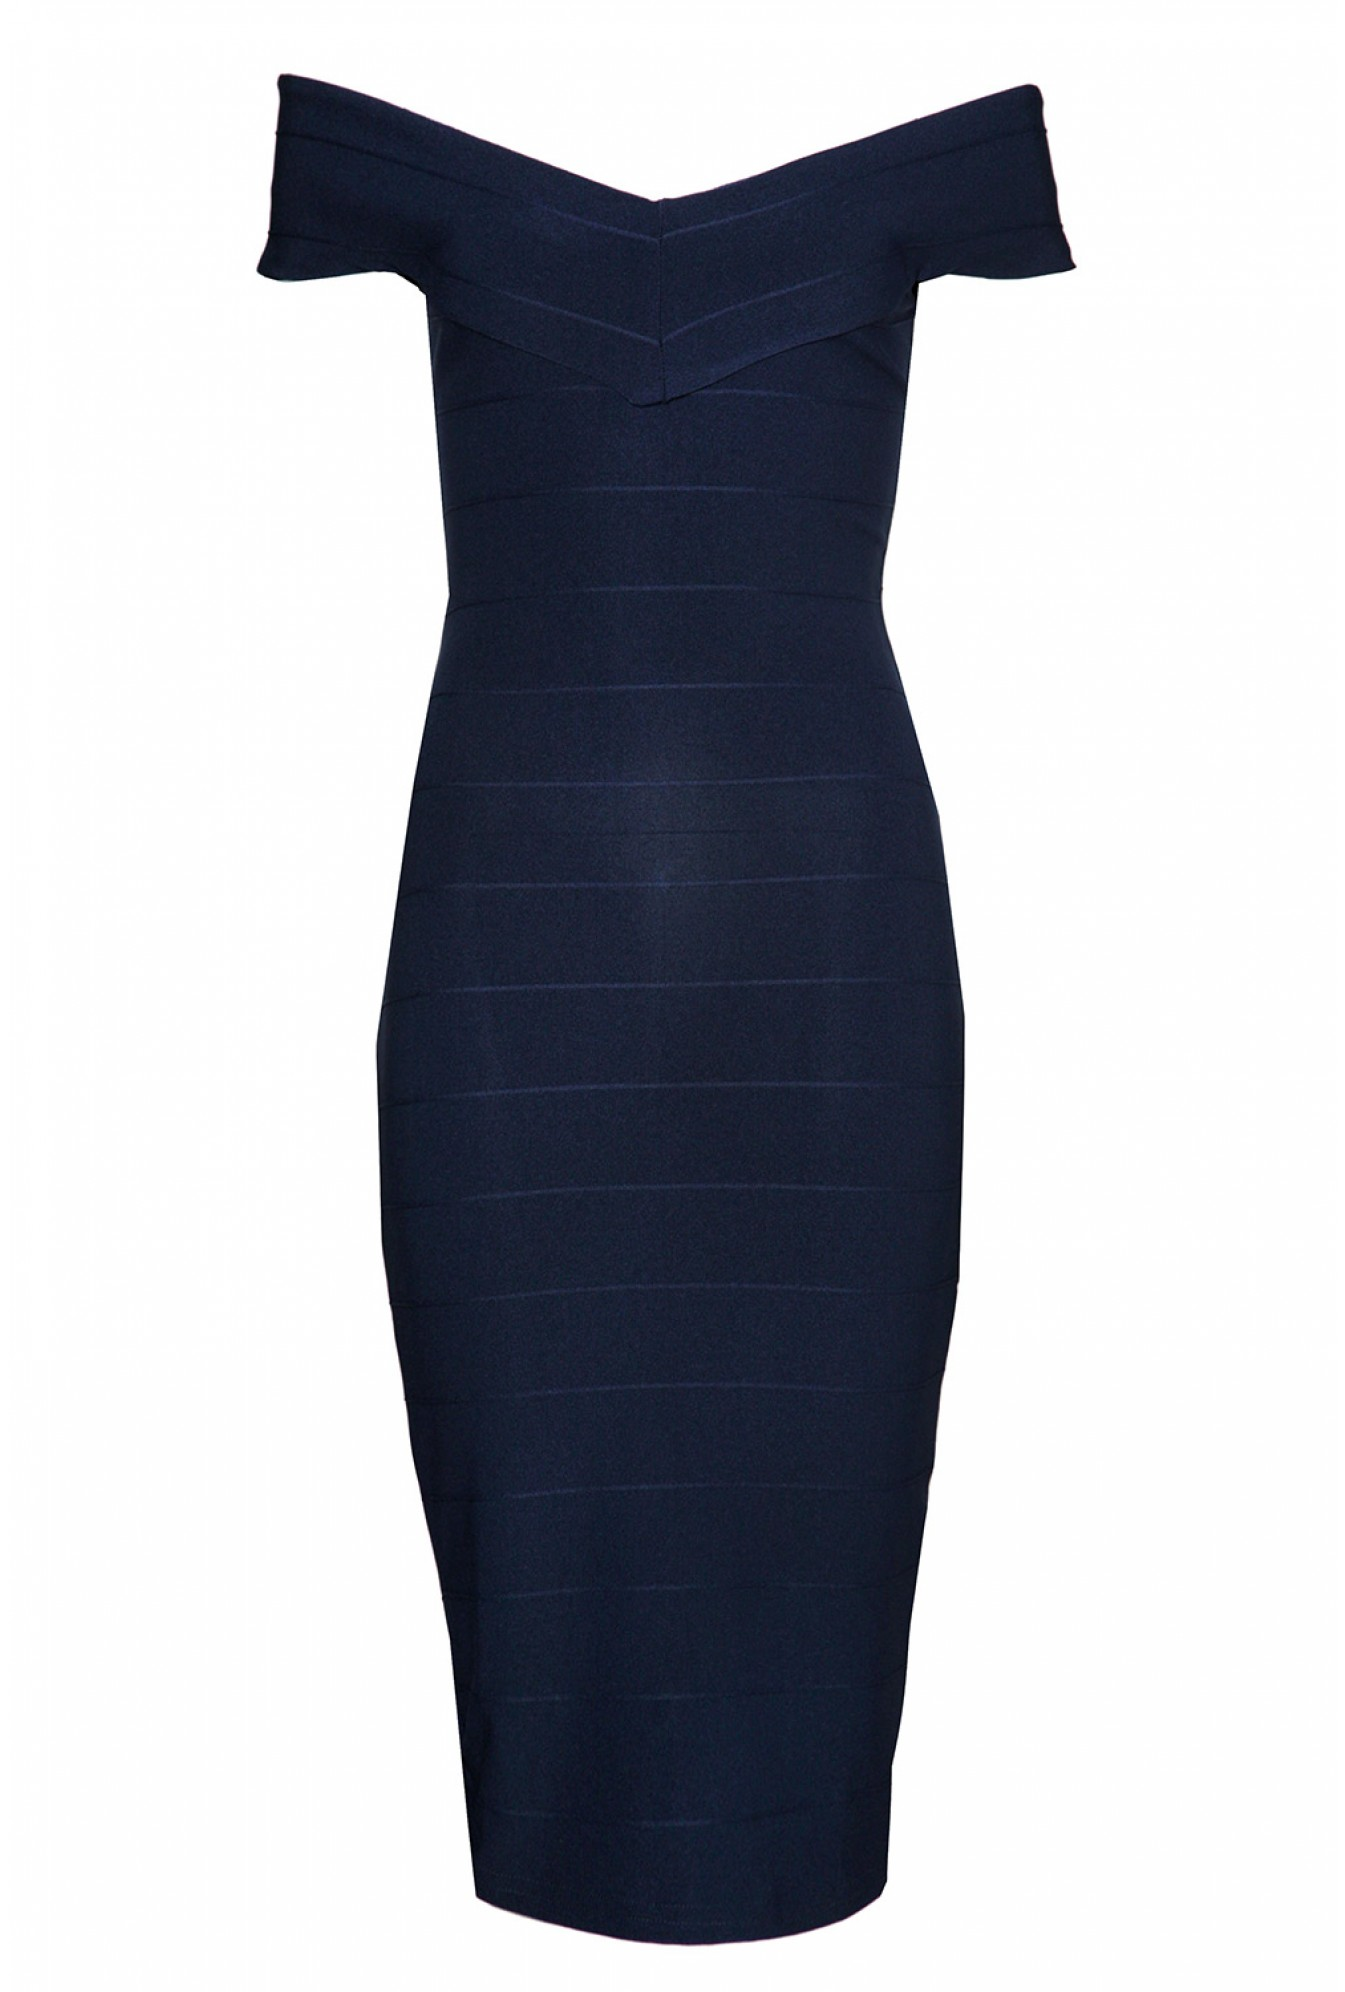 642dbfbaf005 More Views. Ava off the Shoulder Bodycon Dress in Navy